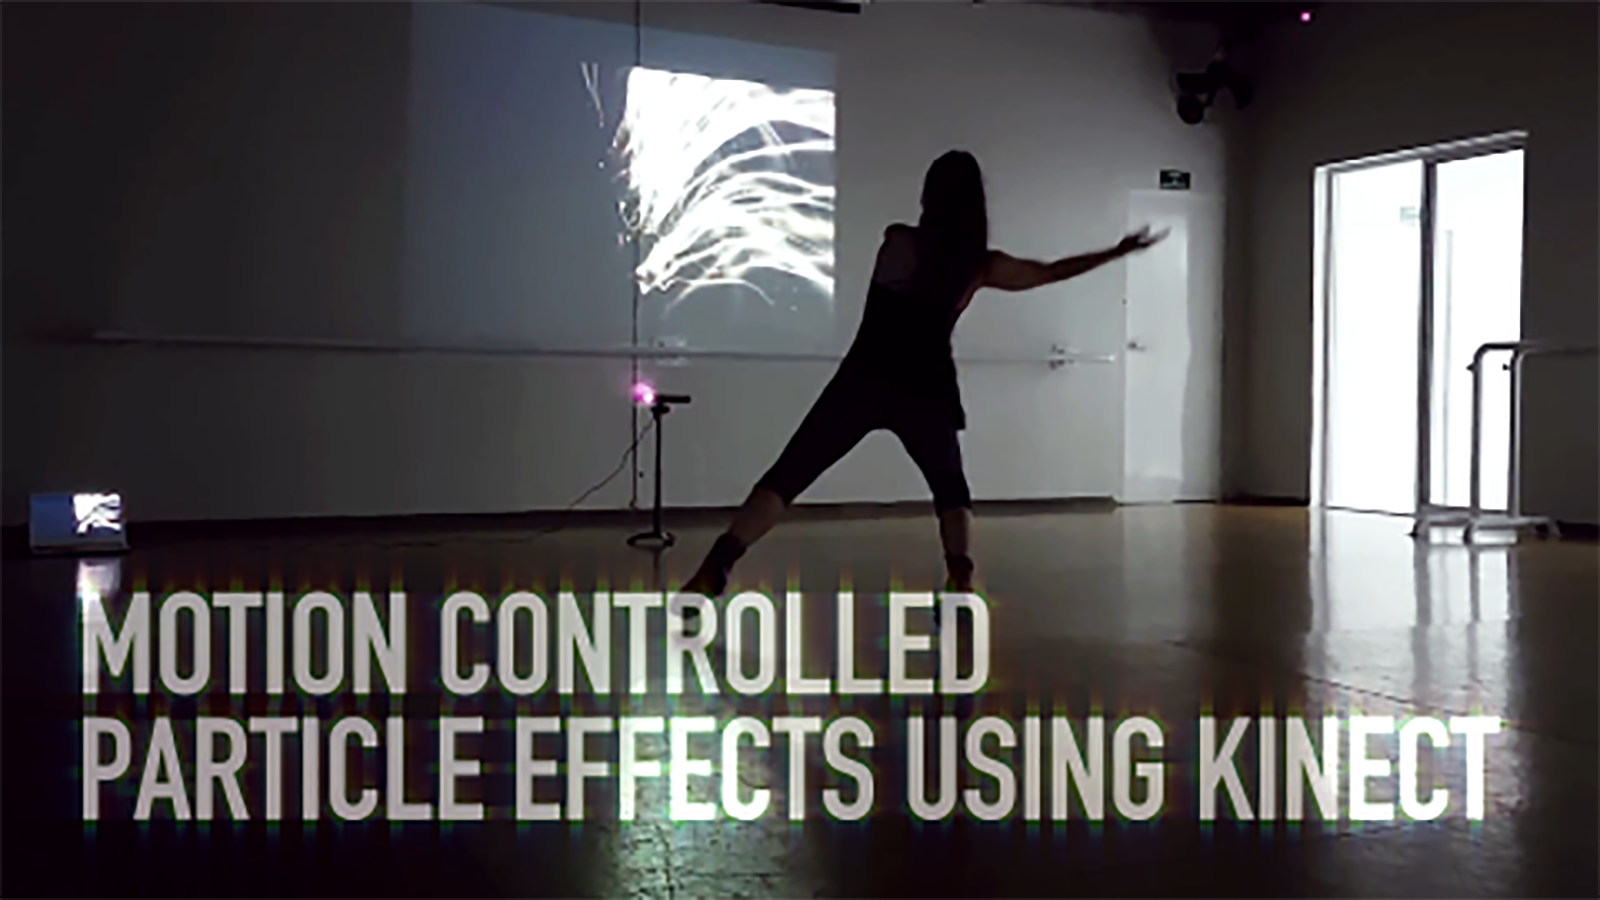 Motion controlled particle effects